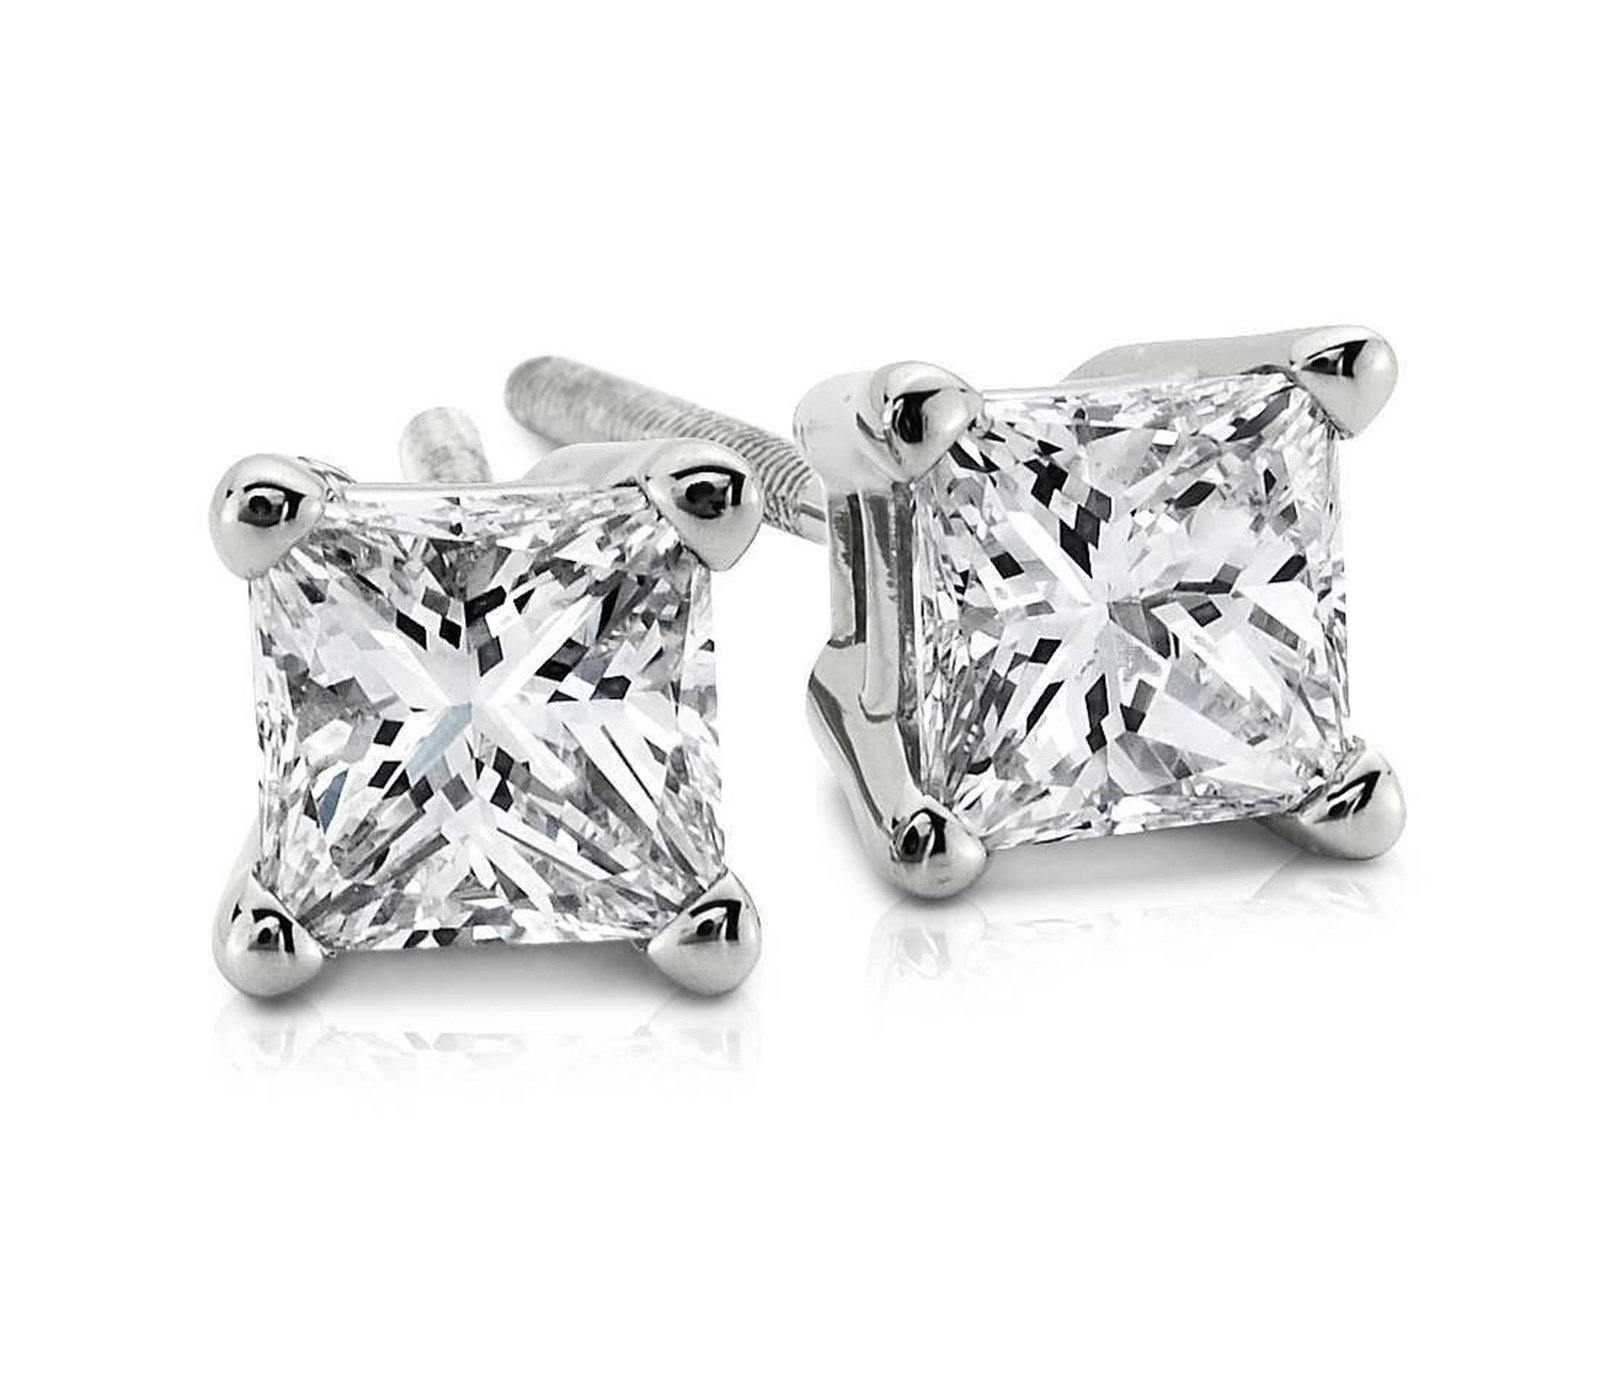 4.0 ctw Princess Brilliant Cut Simulated Diamond CZ Solitaire Stud Earrings in 14k White Gold Screw Back by Clara Pucci (Image #8)